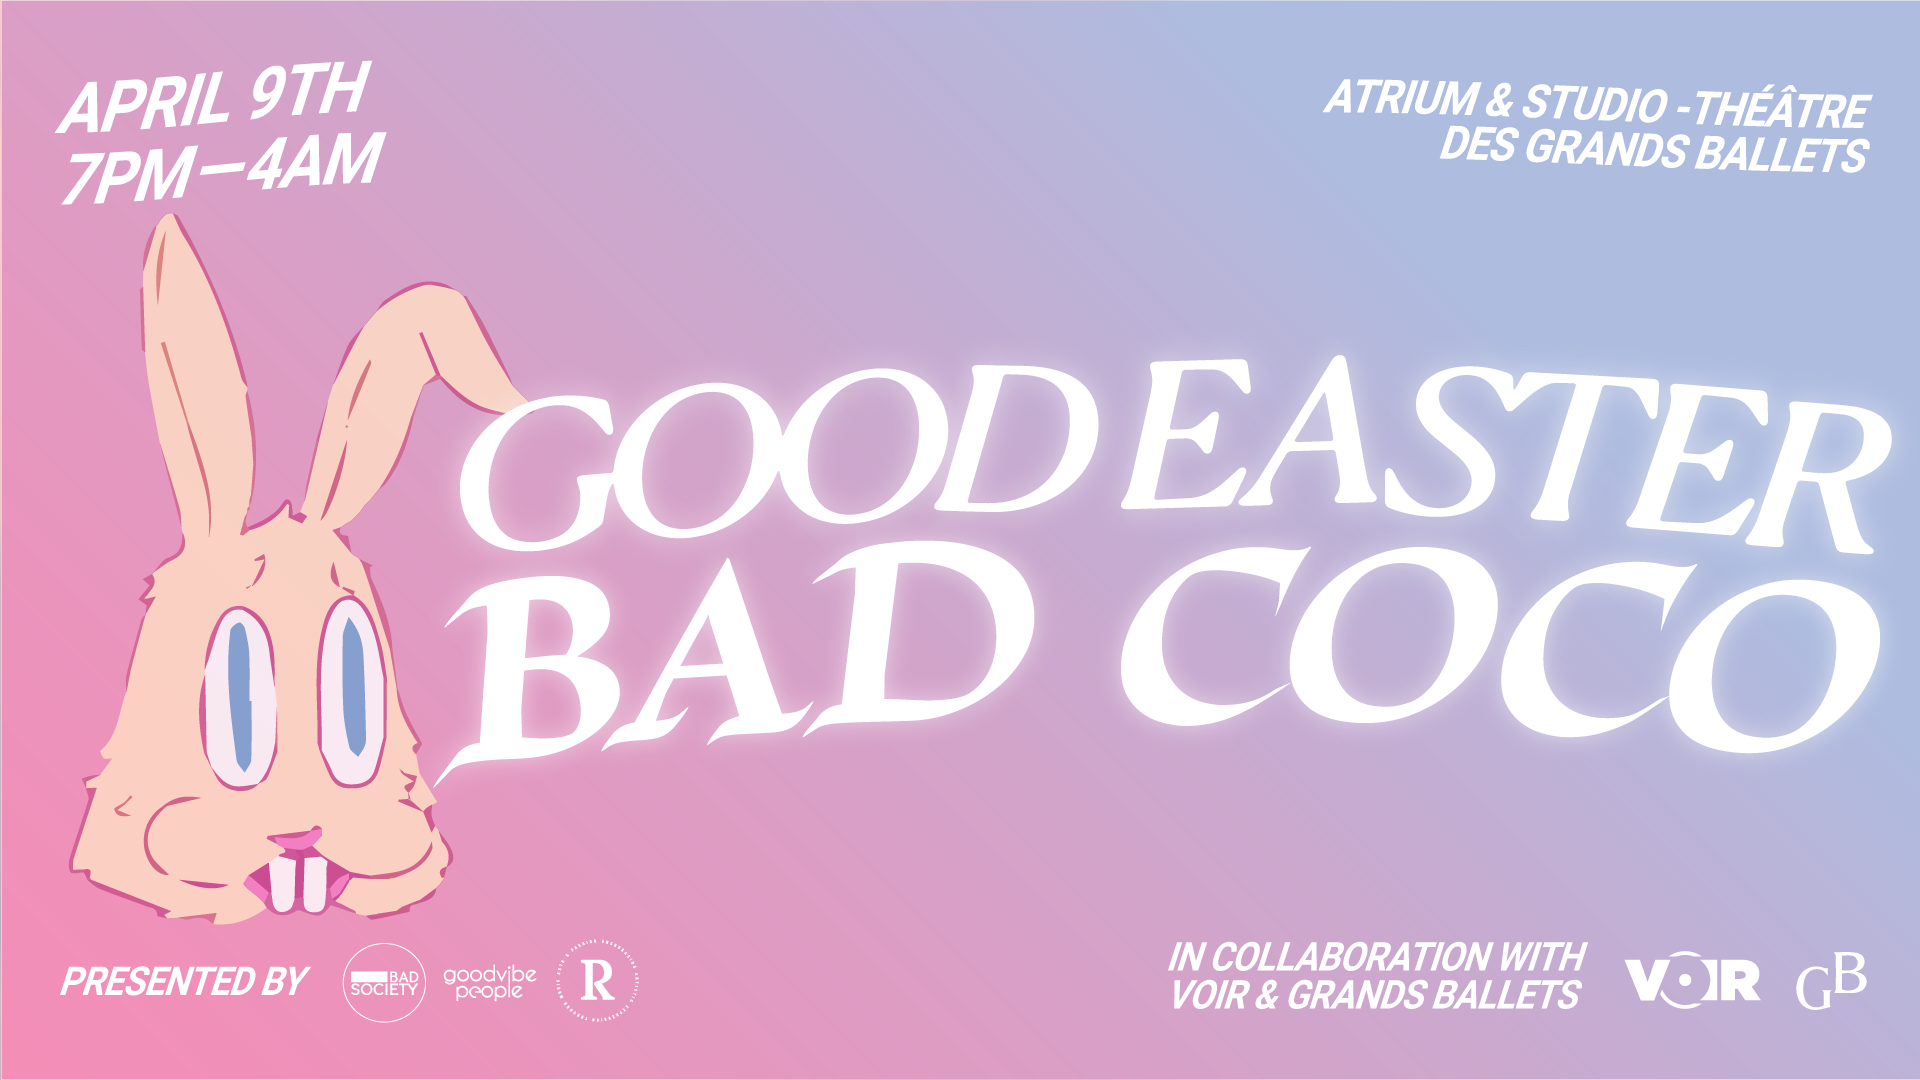 Good Easter Bad Coco